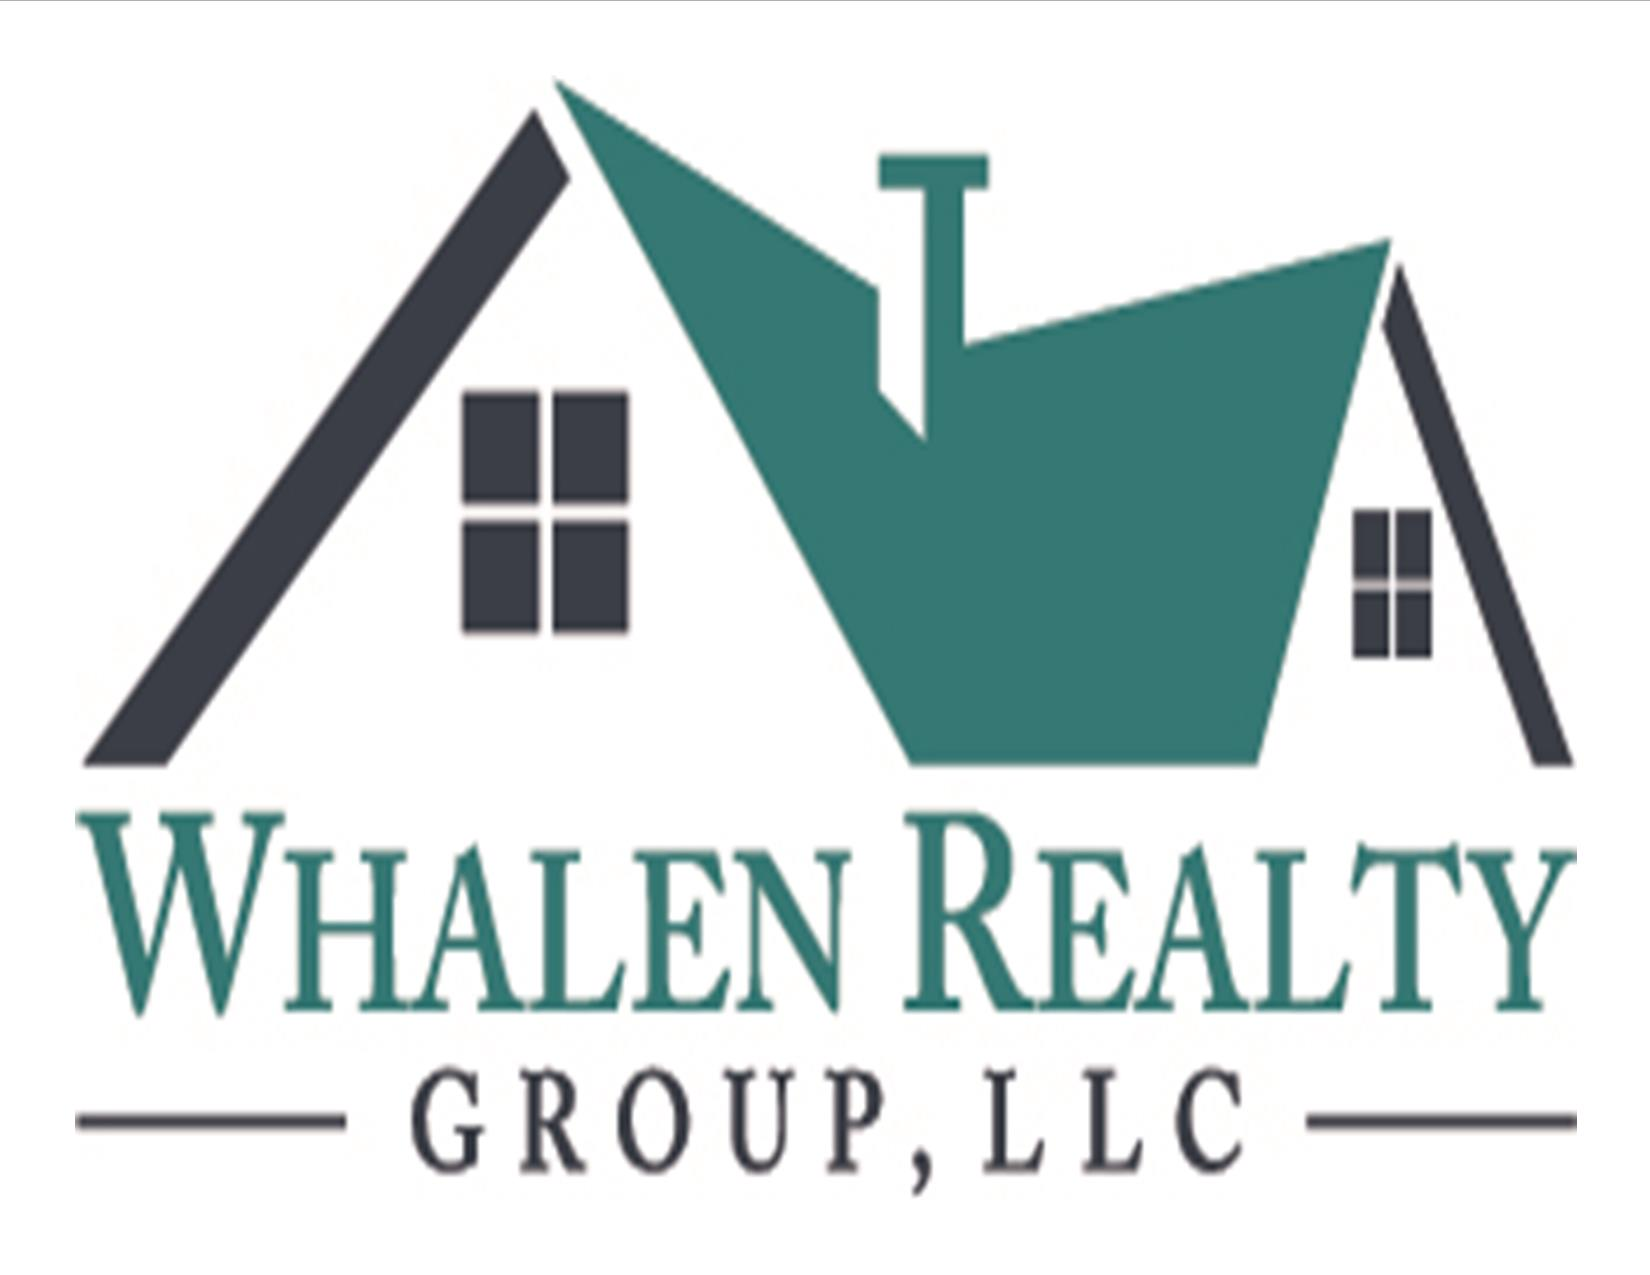 Whalen Realty Group, LLC image 0